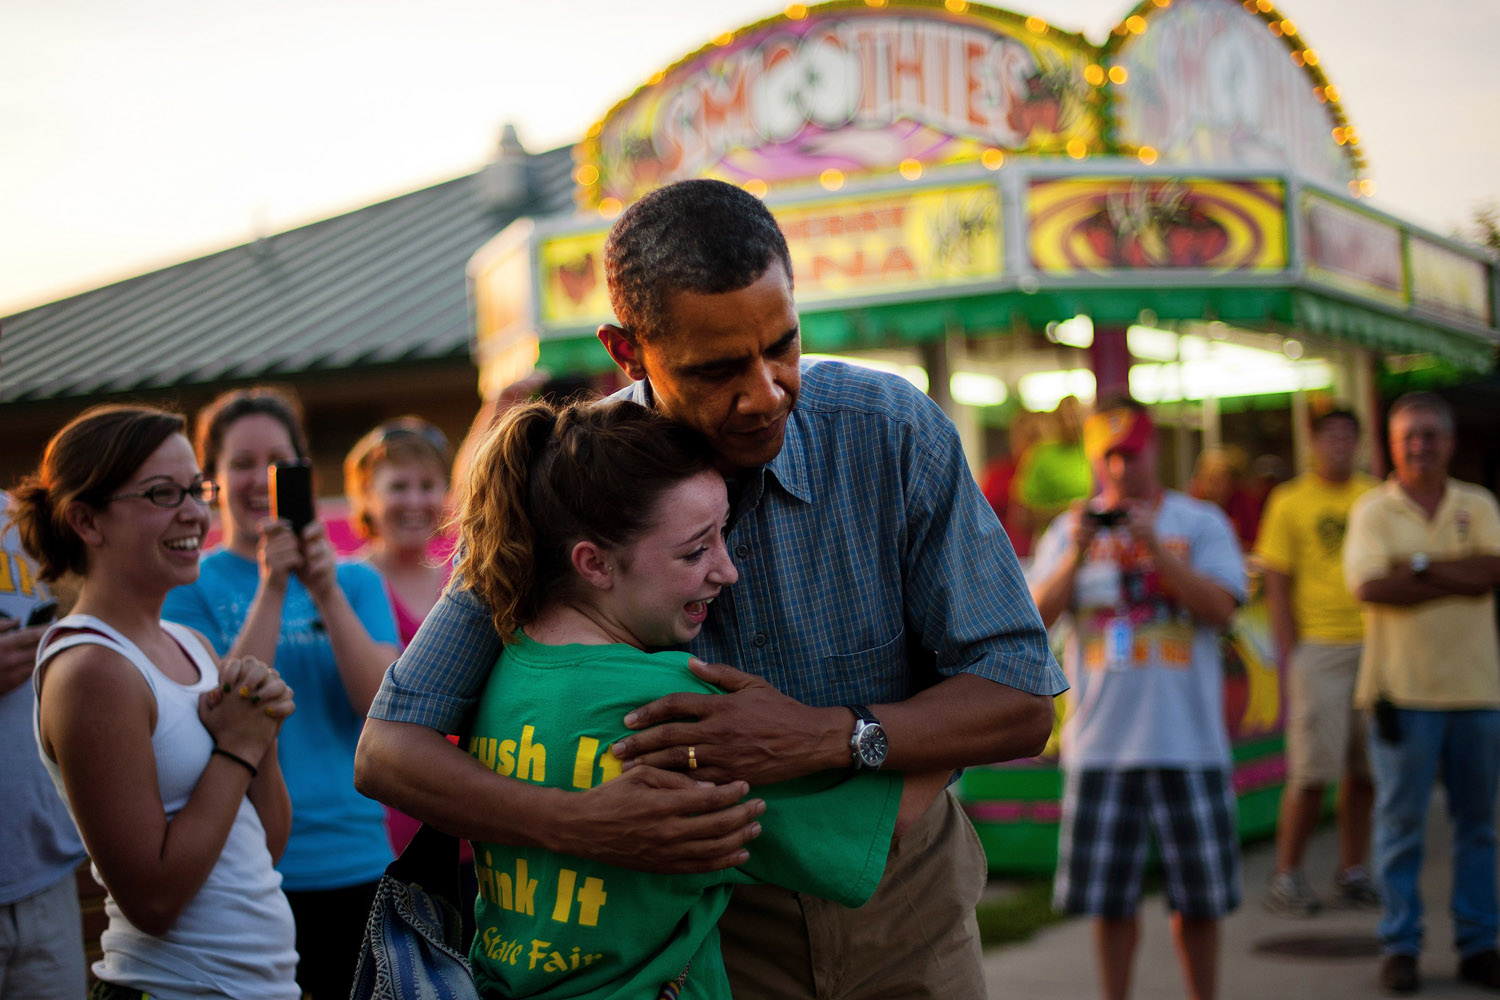 Aug. 13, 2012. President Barack Obama gets a hug from Joy Dannelly as he visits the Iowa State Fair in Des Moines.